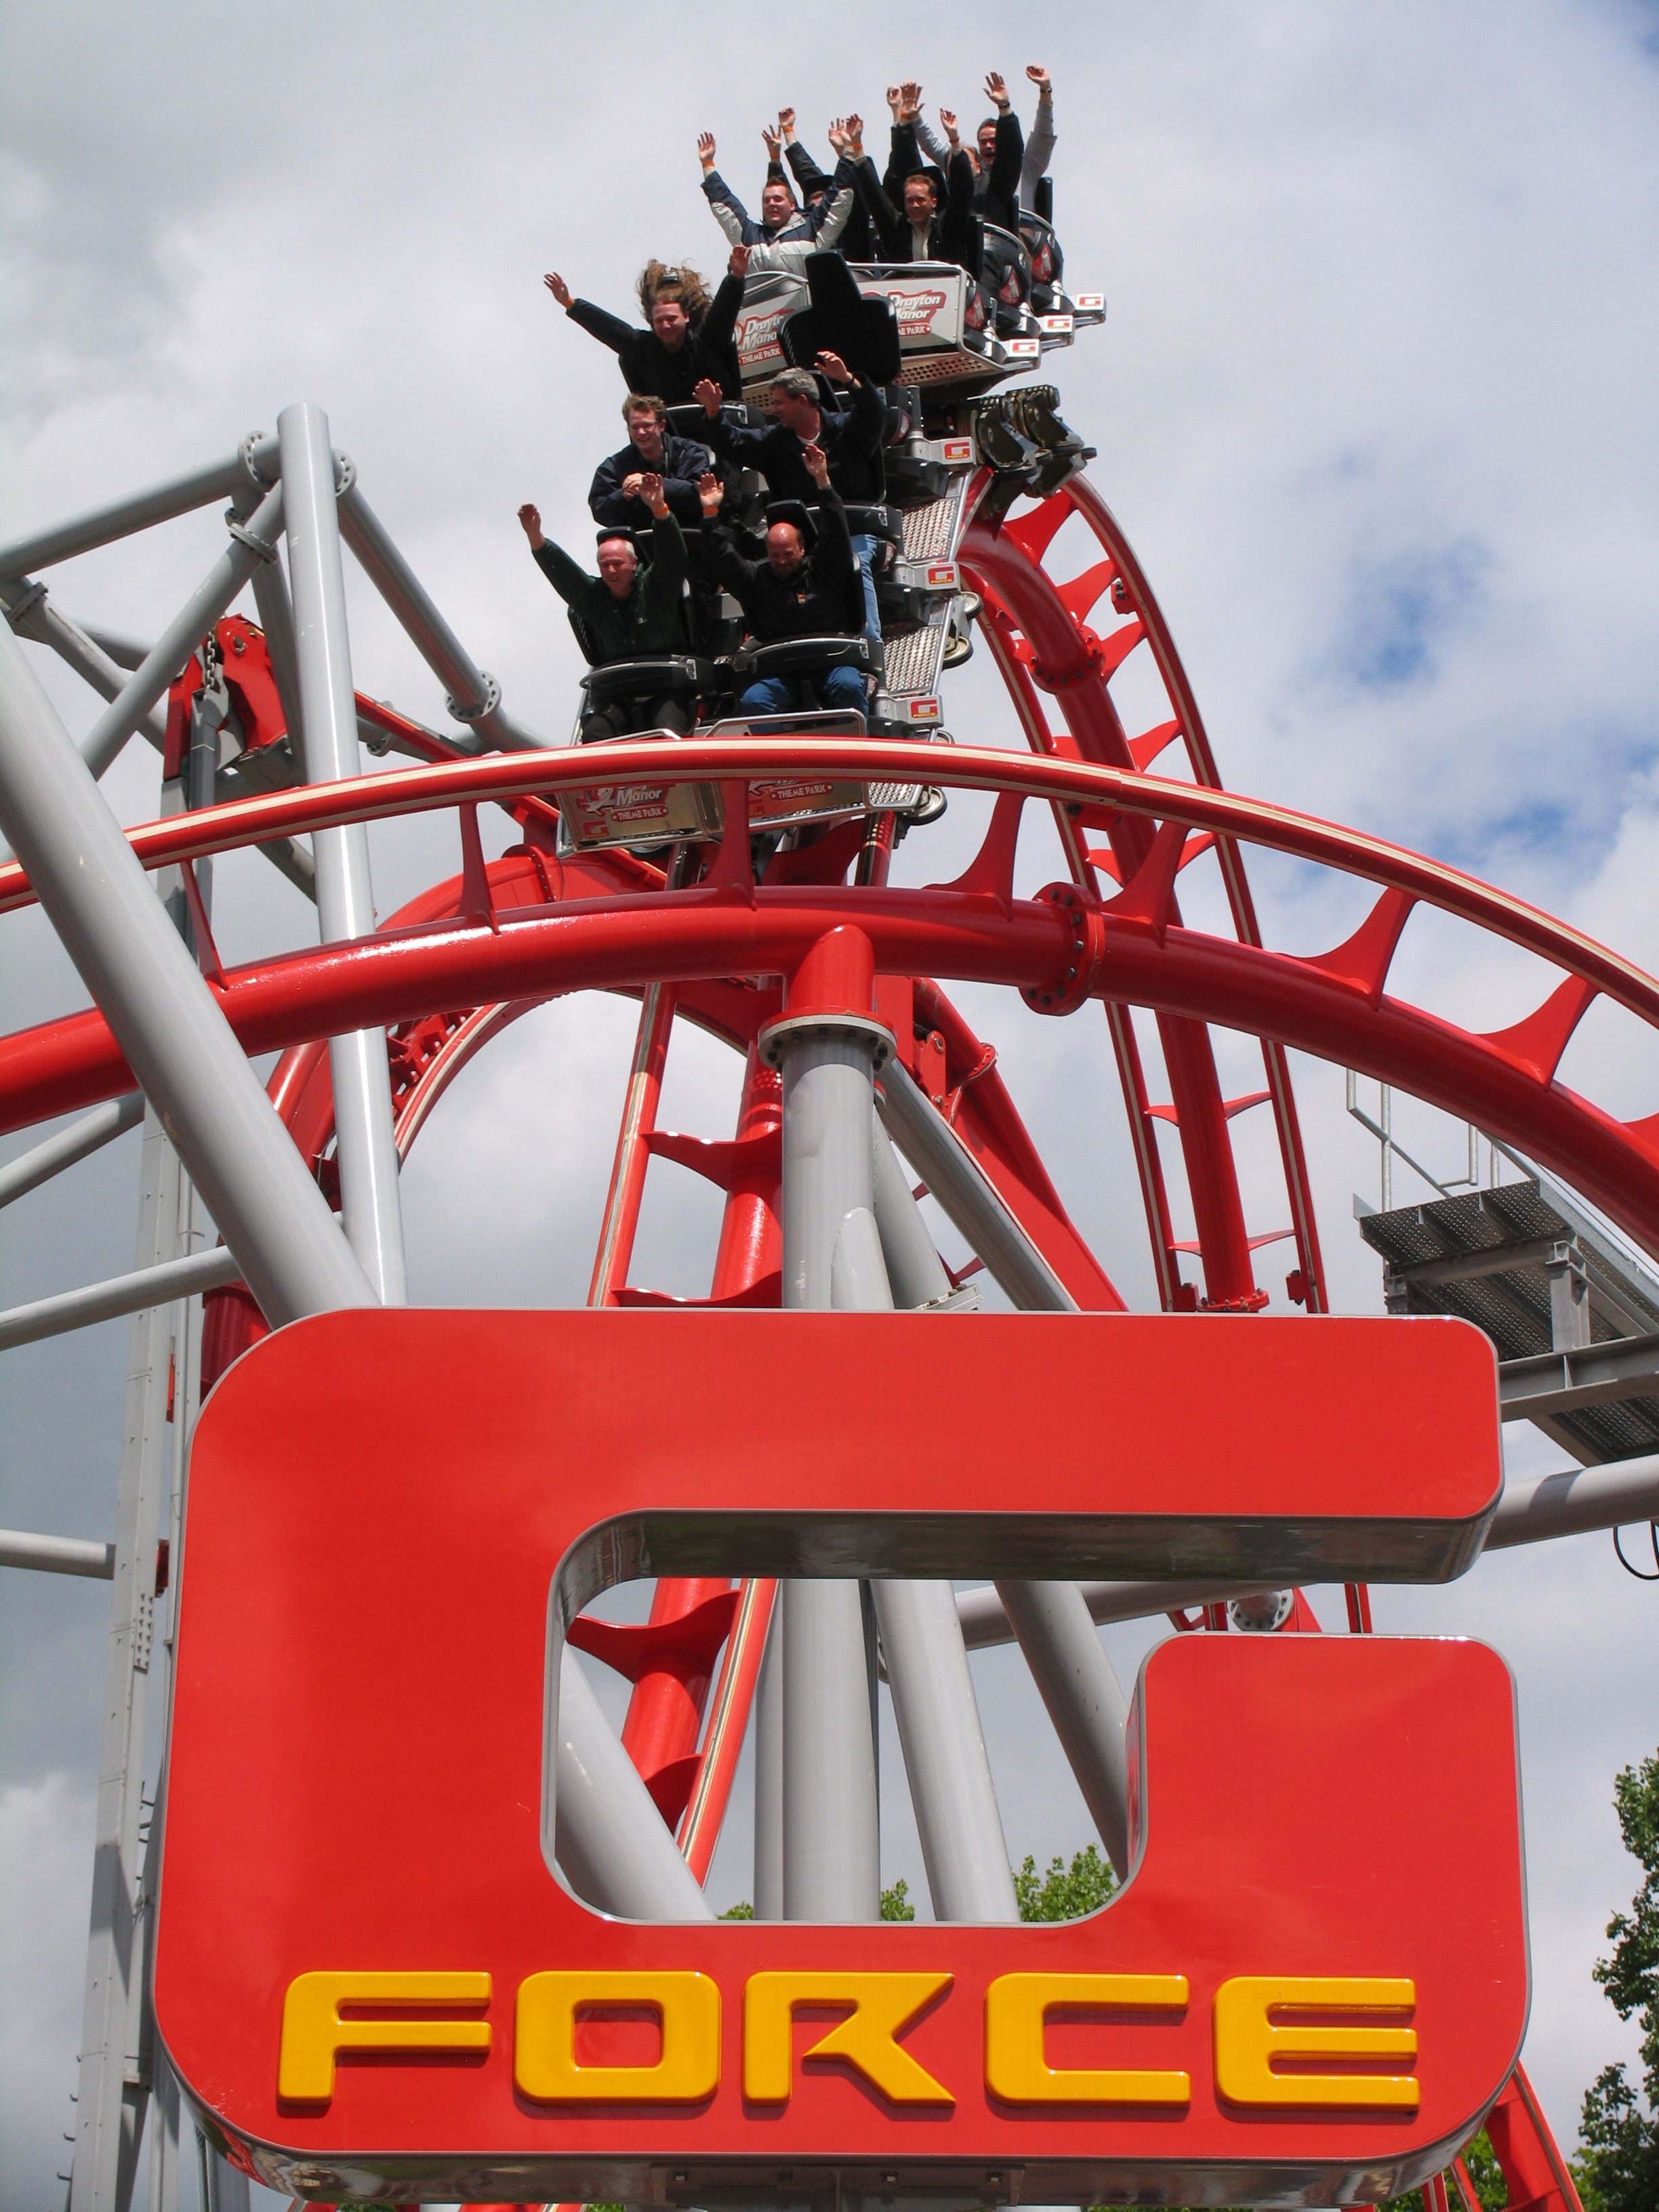 G-Force (Drayton Manor)